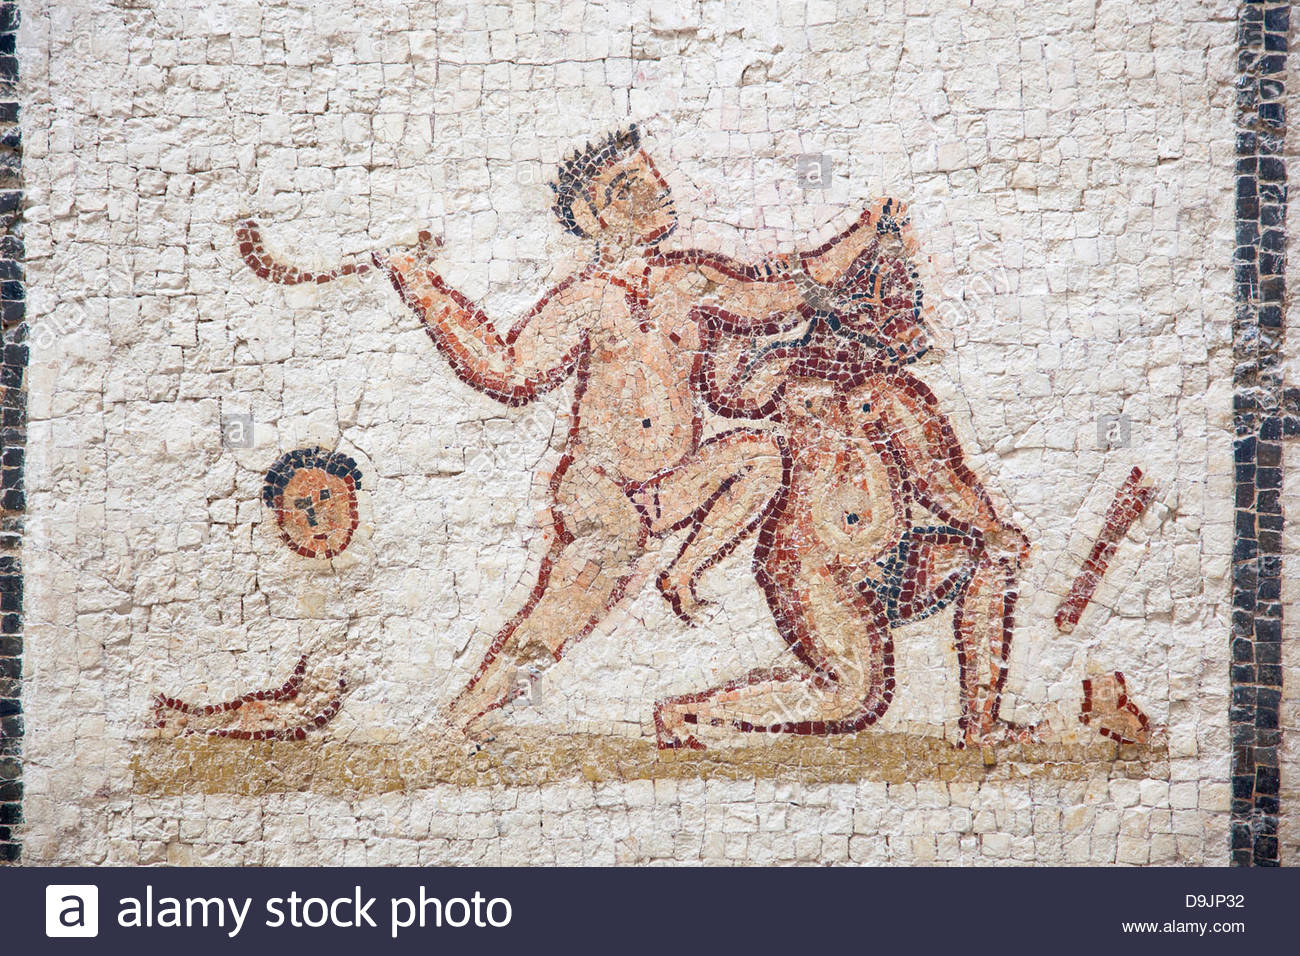 Ancient mosaics in Musee National du Bardo in Tunis, Tunisia Stock Photo